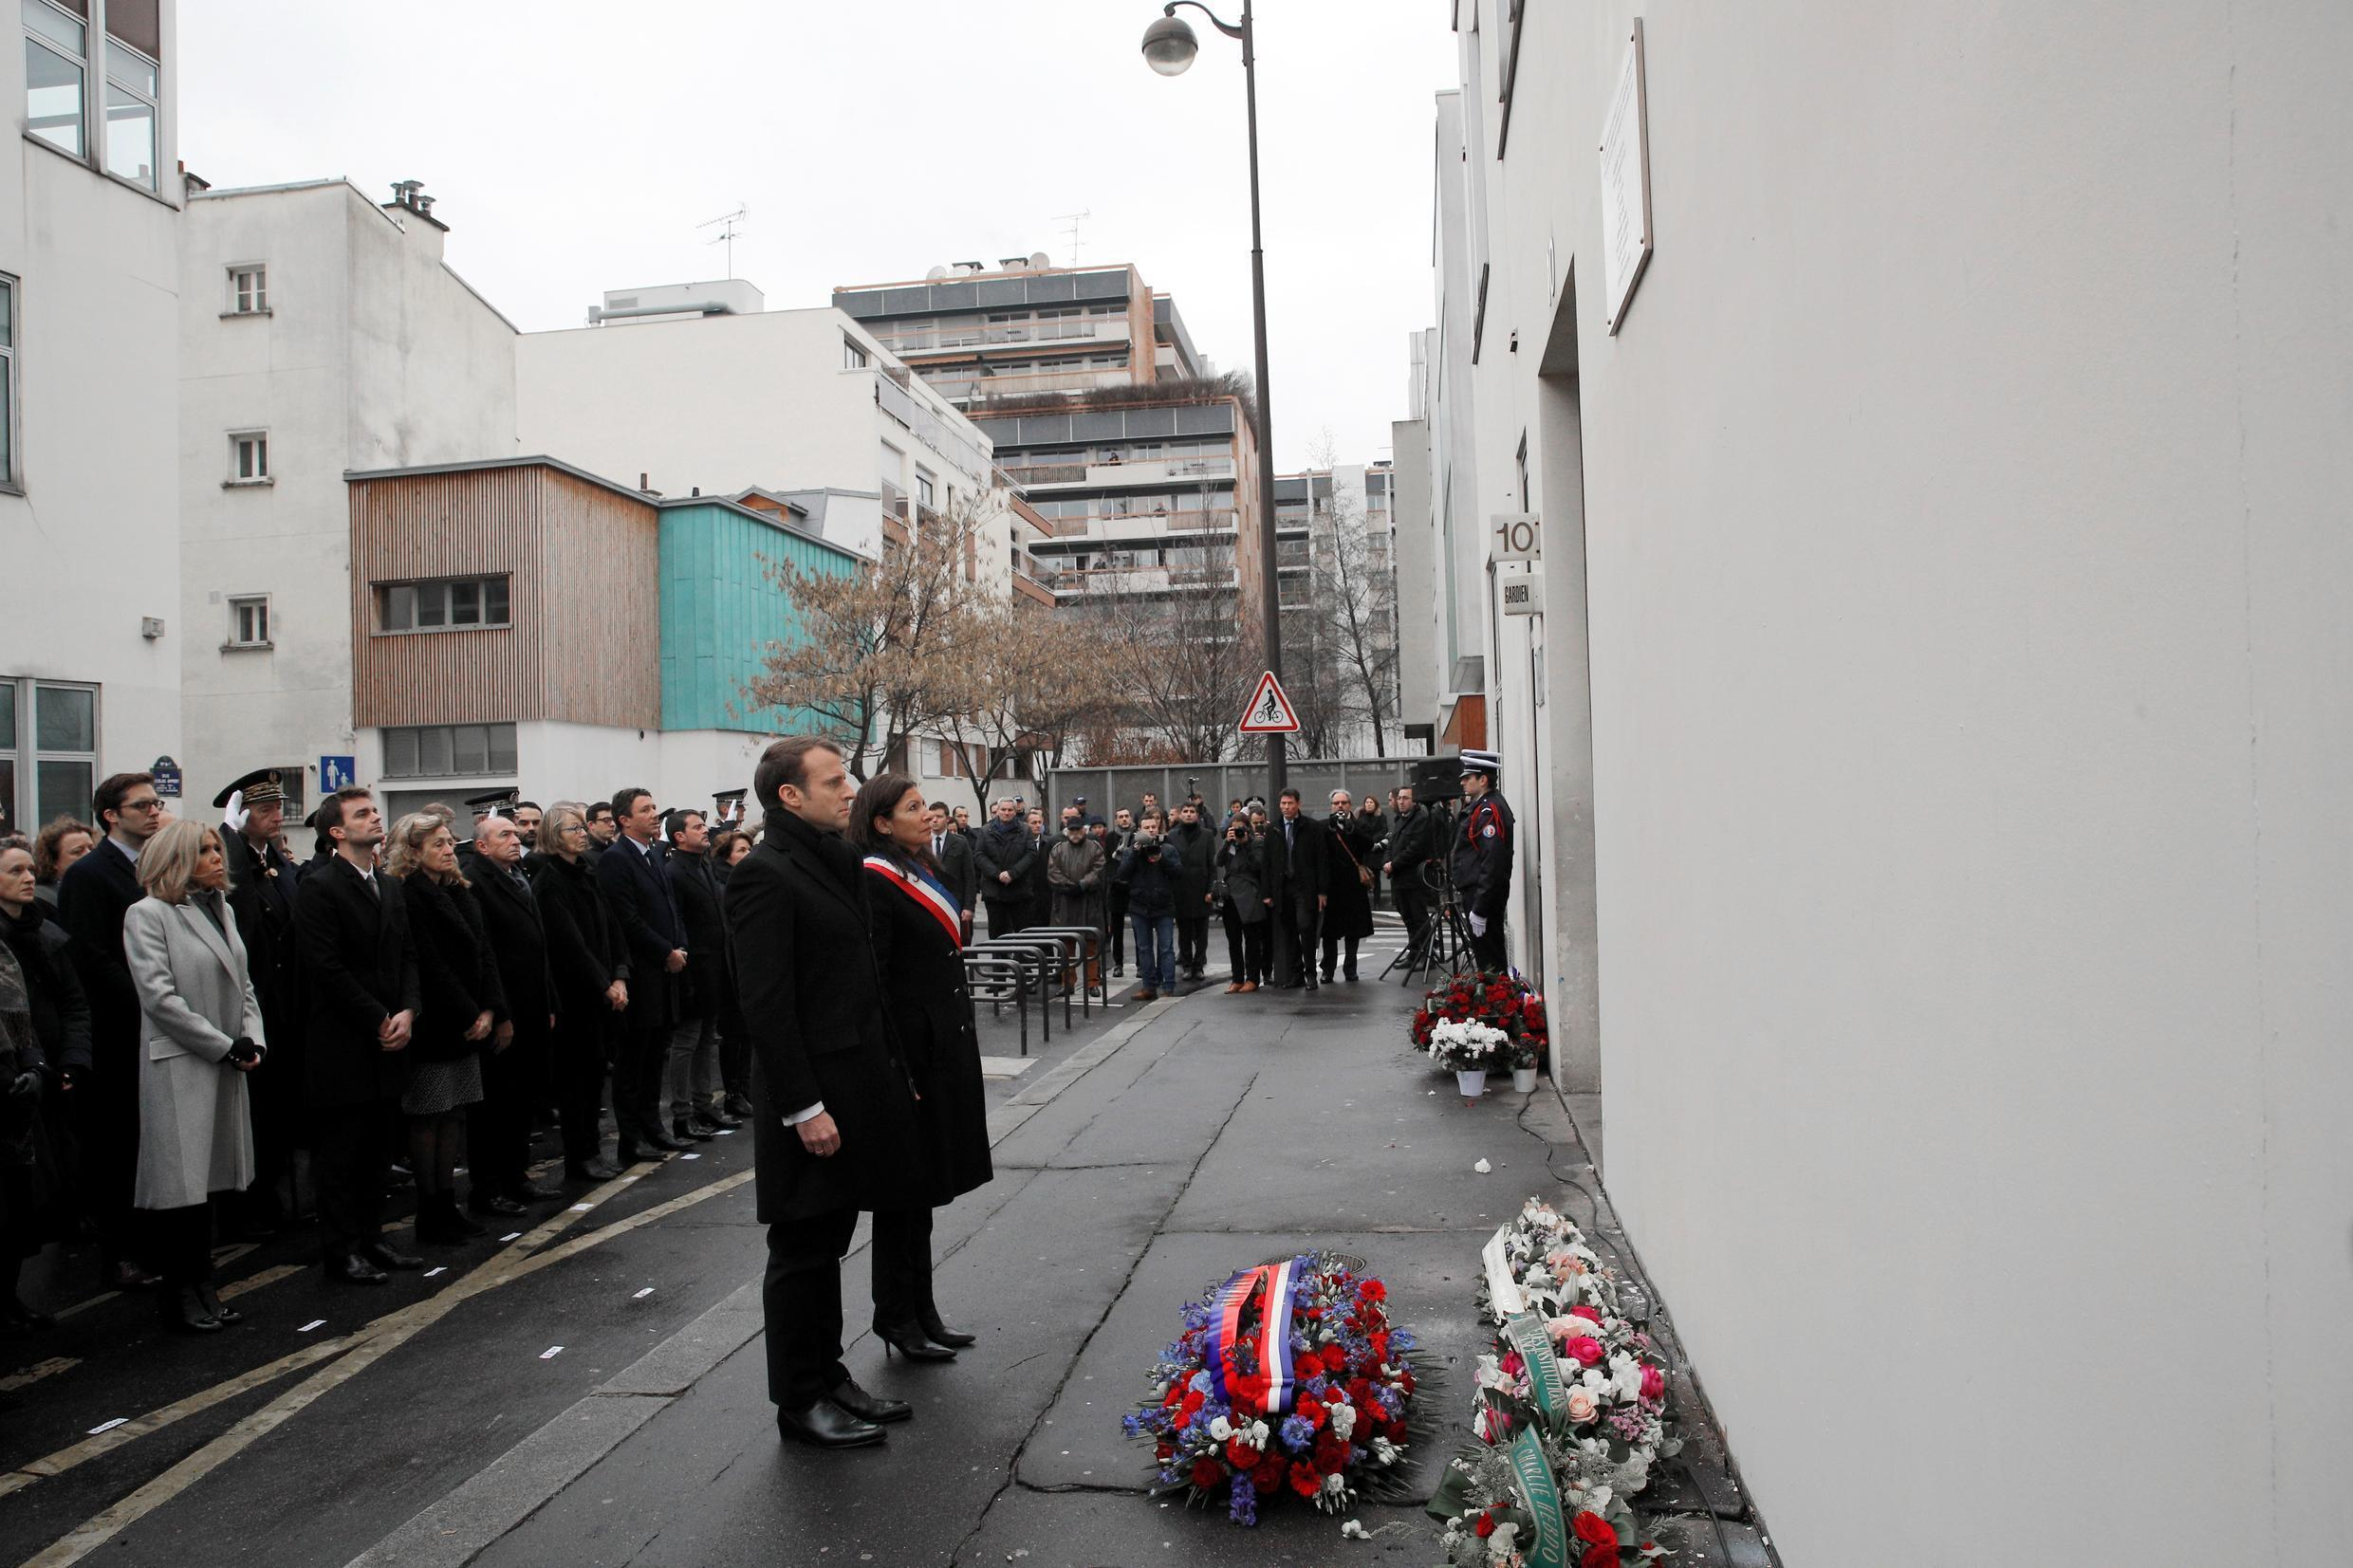 French President Emmanuel Macron (C) and Paris mayor Anne Hidalgo (rear C) observe a minute of silence outside the satirical newspaper Charlie Hebdo former office, to mark the third anniversary of the attack, in Paris, on January 7, 2018.